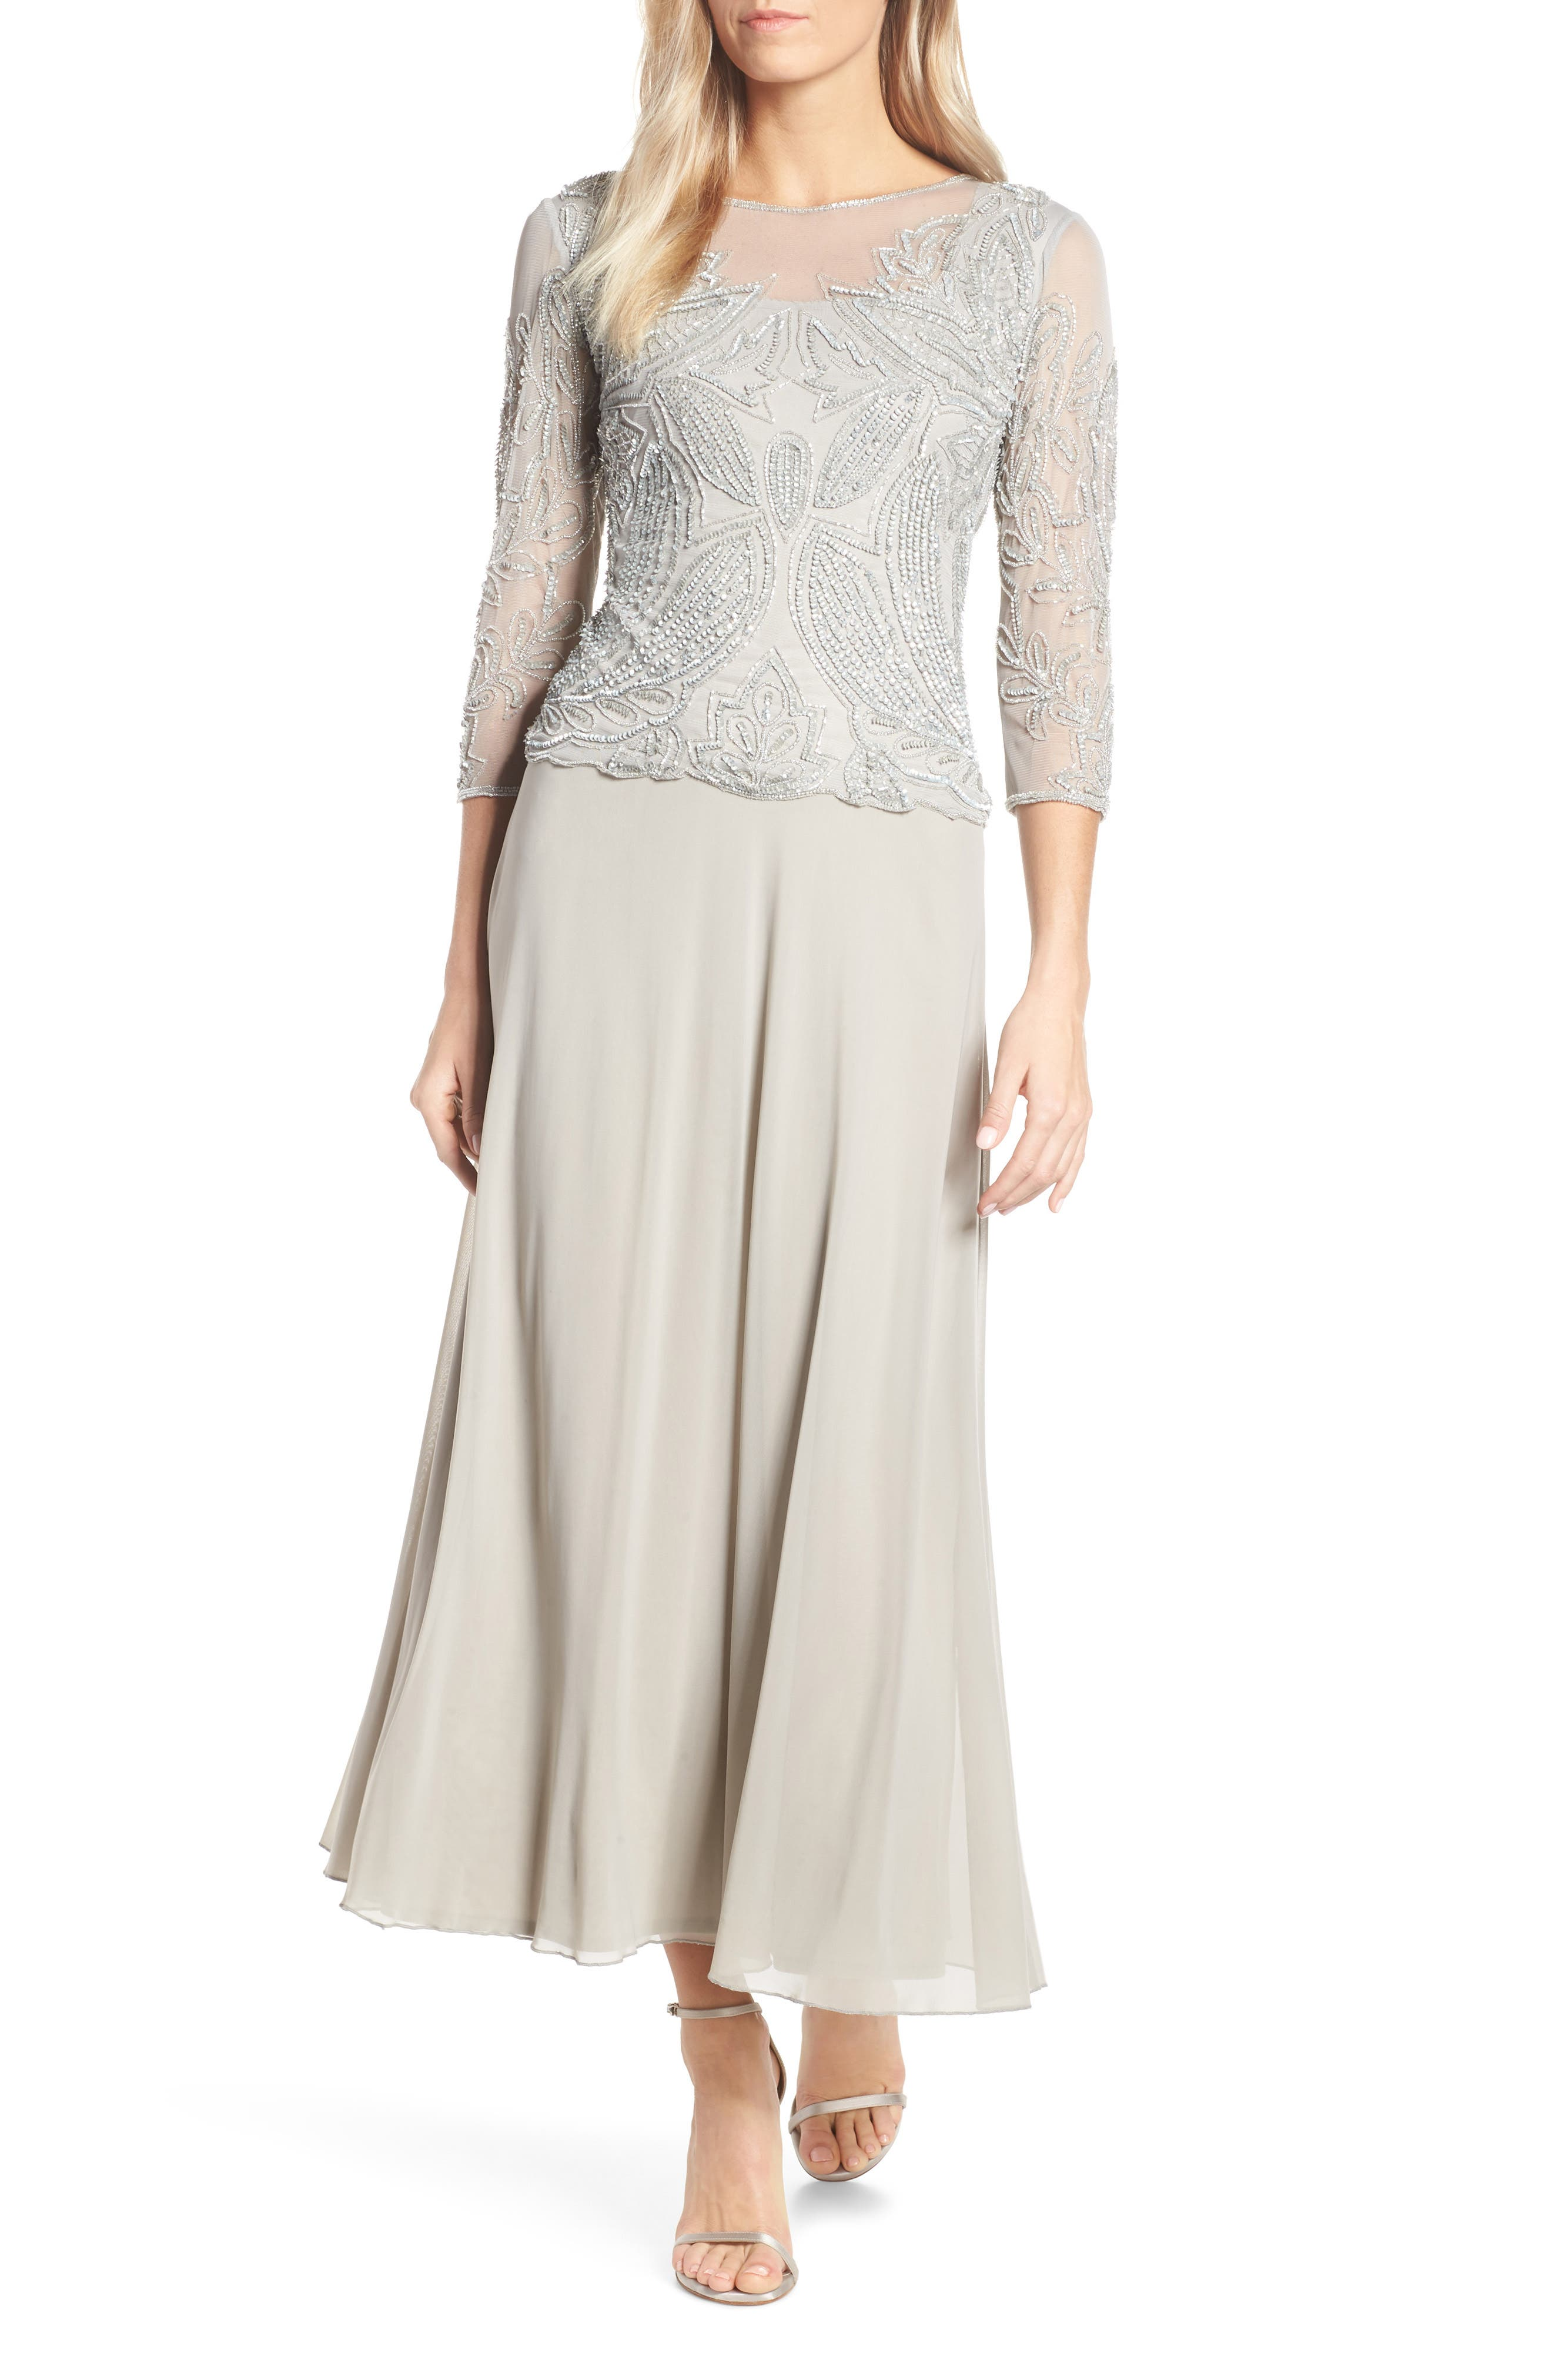 PISARRO NIGHTS, Embellished Mesh Gown, Main thumbnail 1, color, SILVER GREY